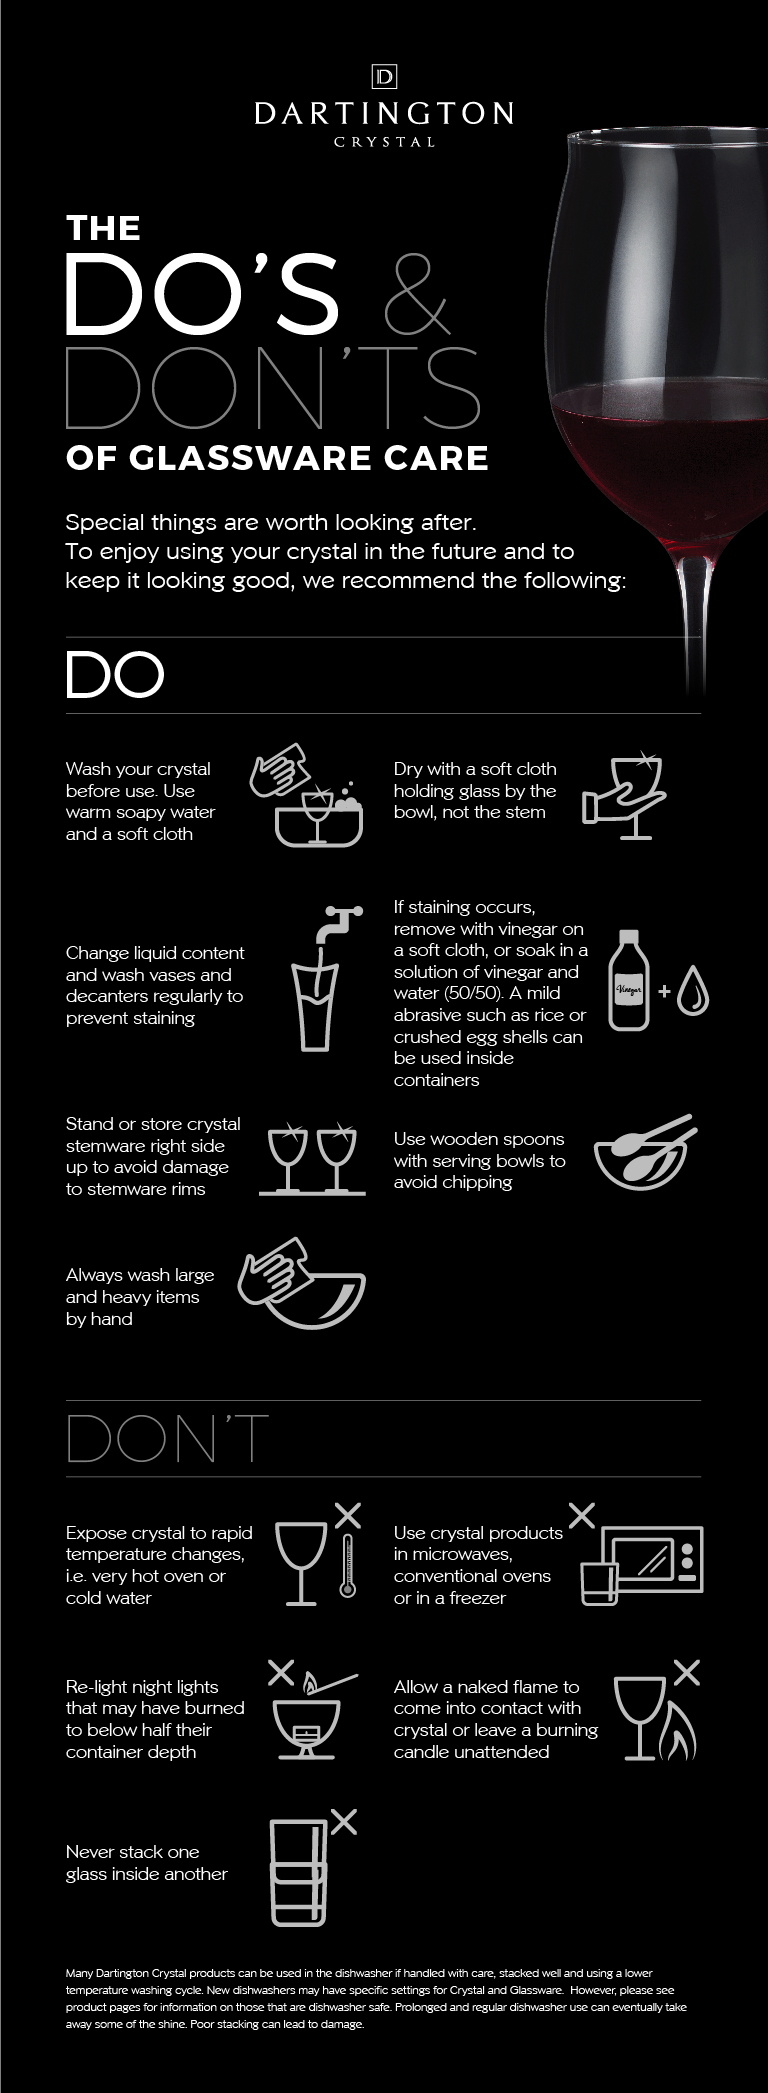 Product Care Do's and Don'ts